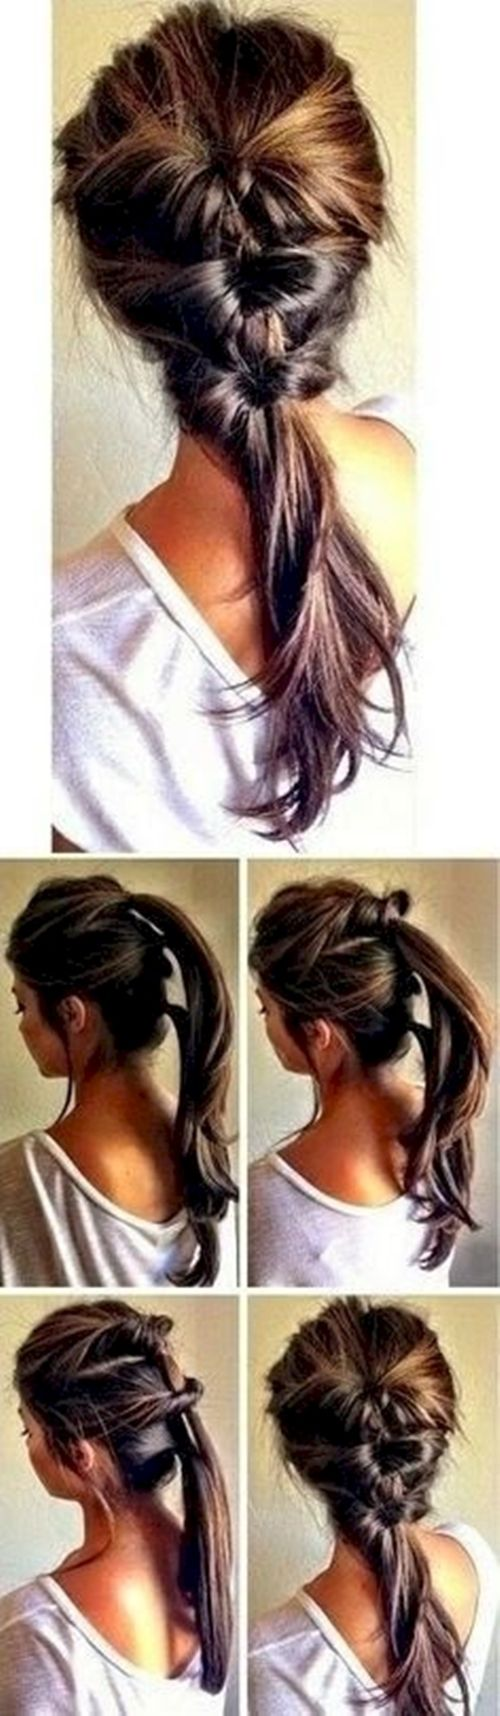 14 different ponytail styles here for you to try, each of which will work with a different length or style hair.